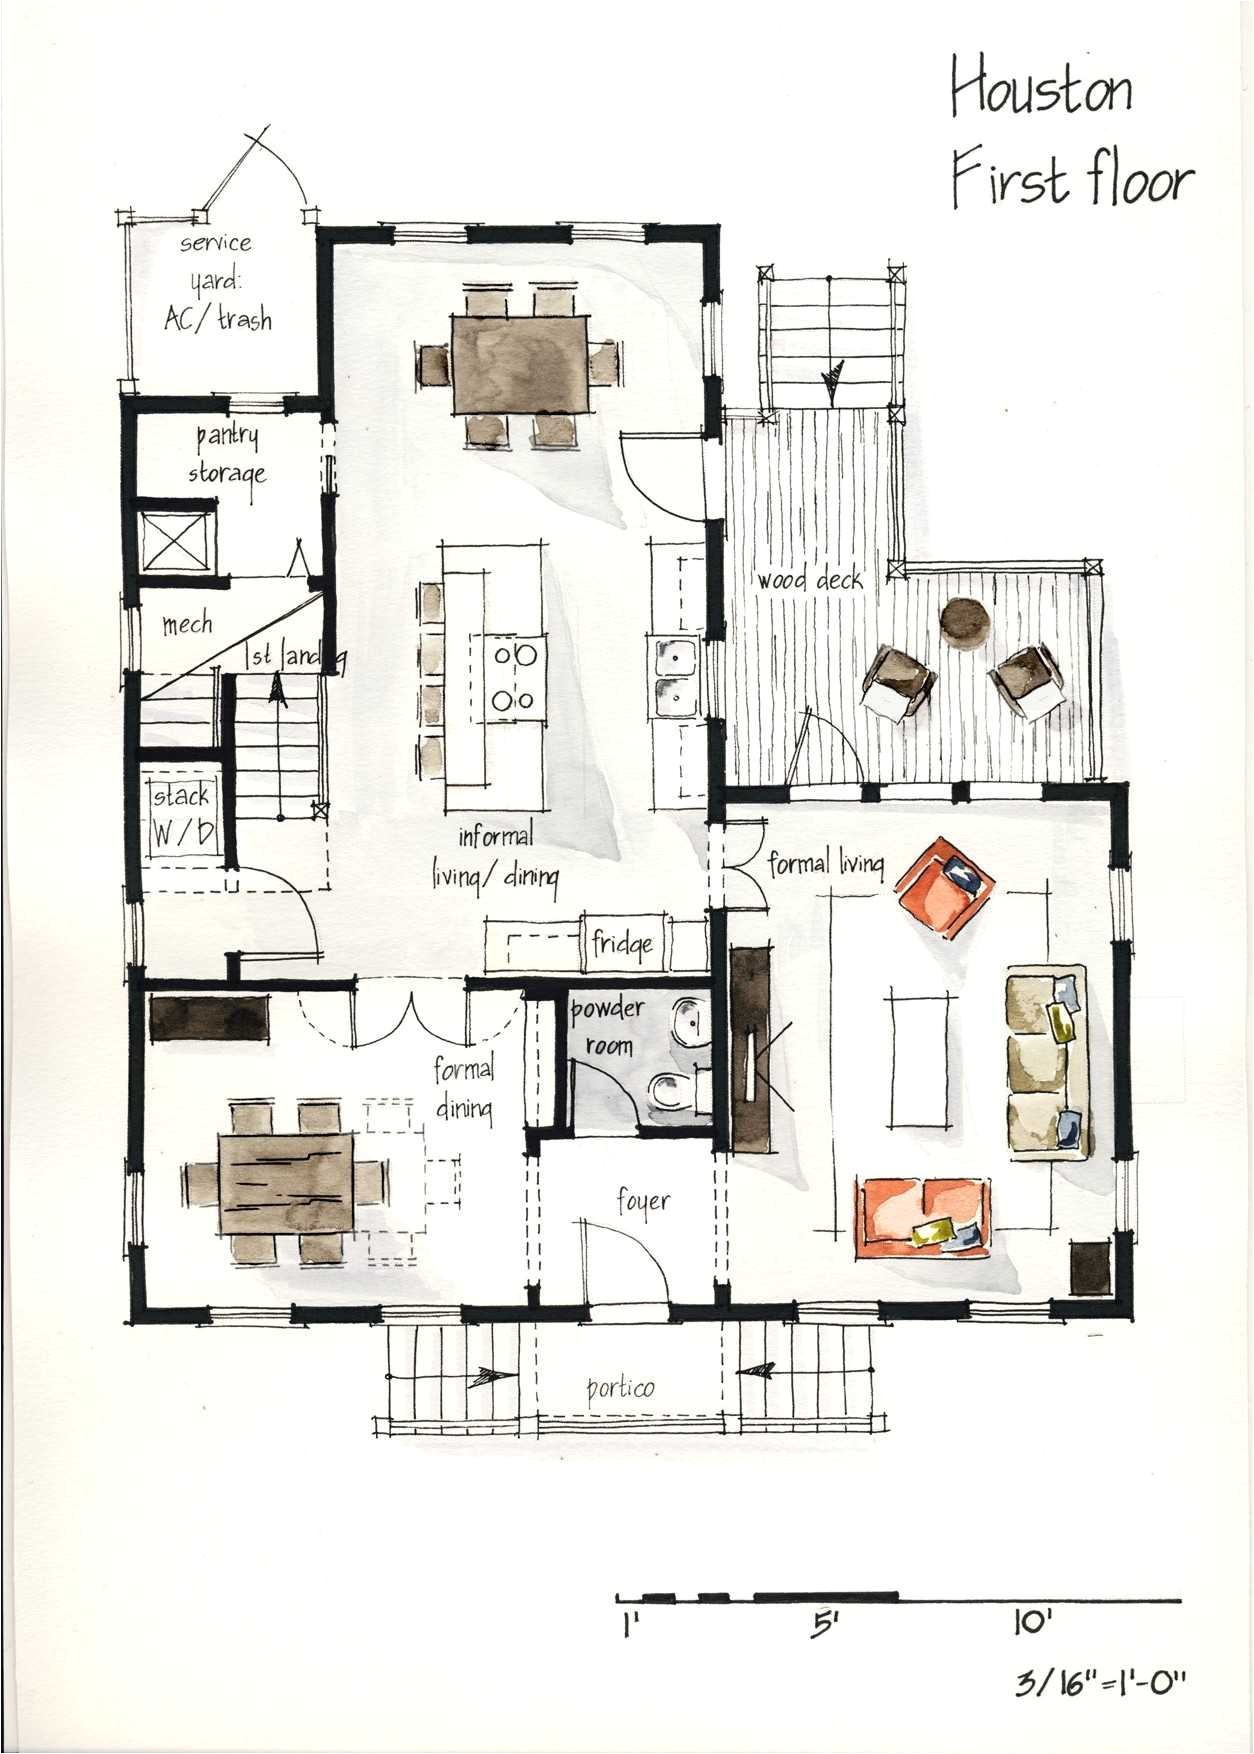 good housekeeping house plans or multi room exam suite floor plan designed by jain malkin inc